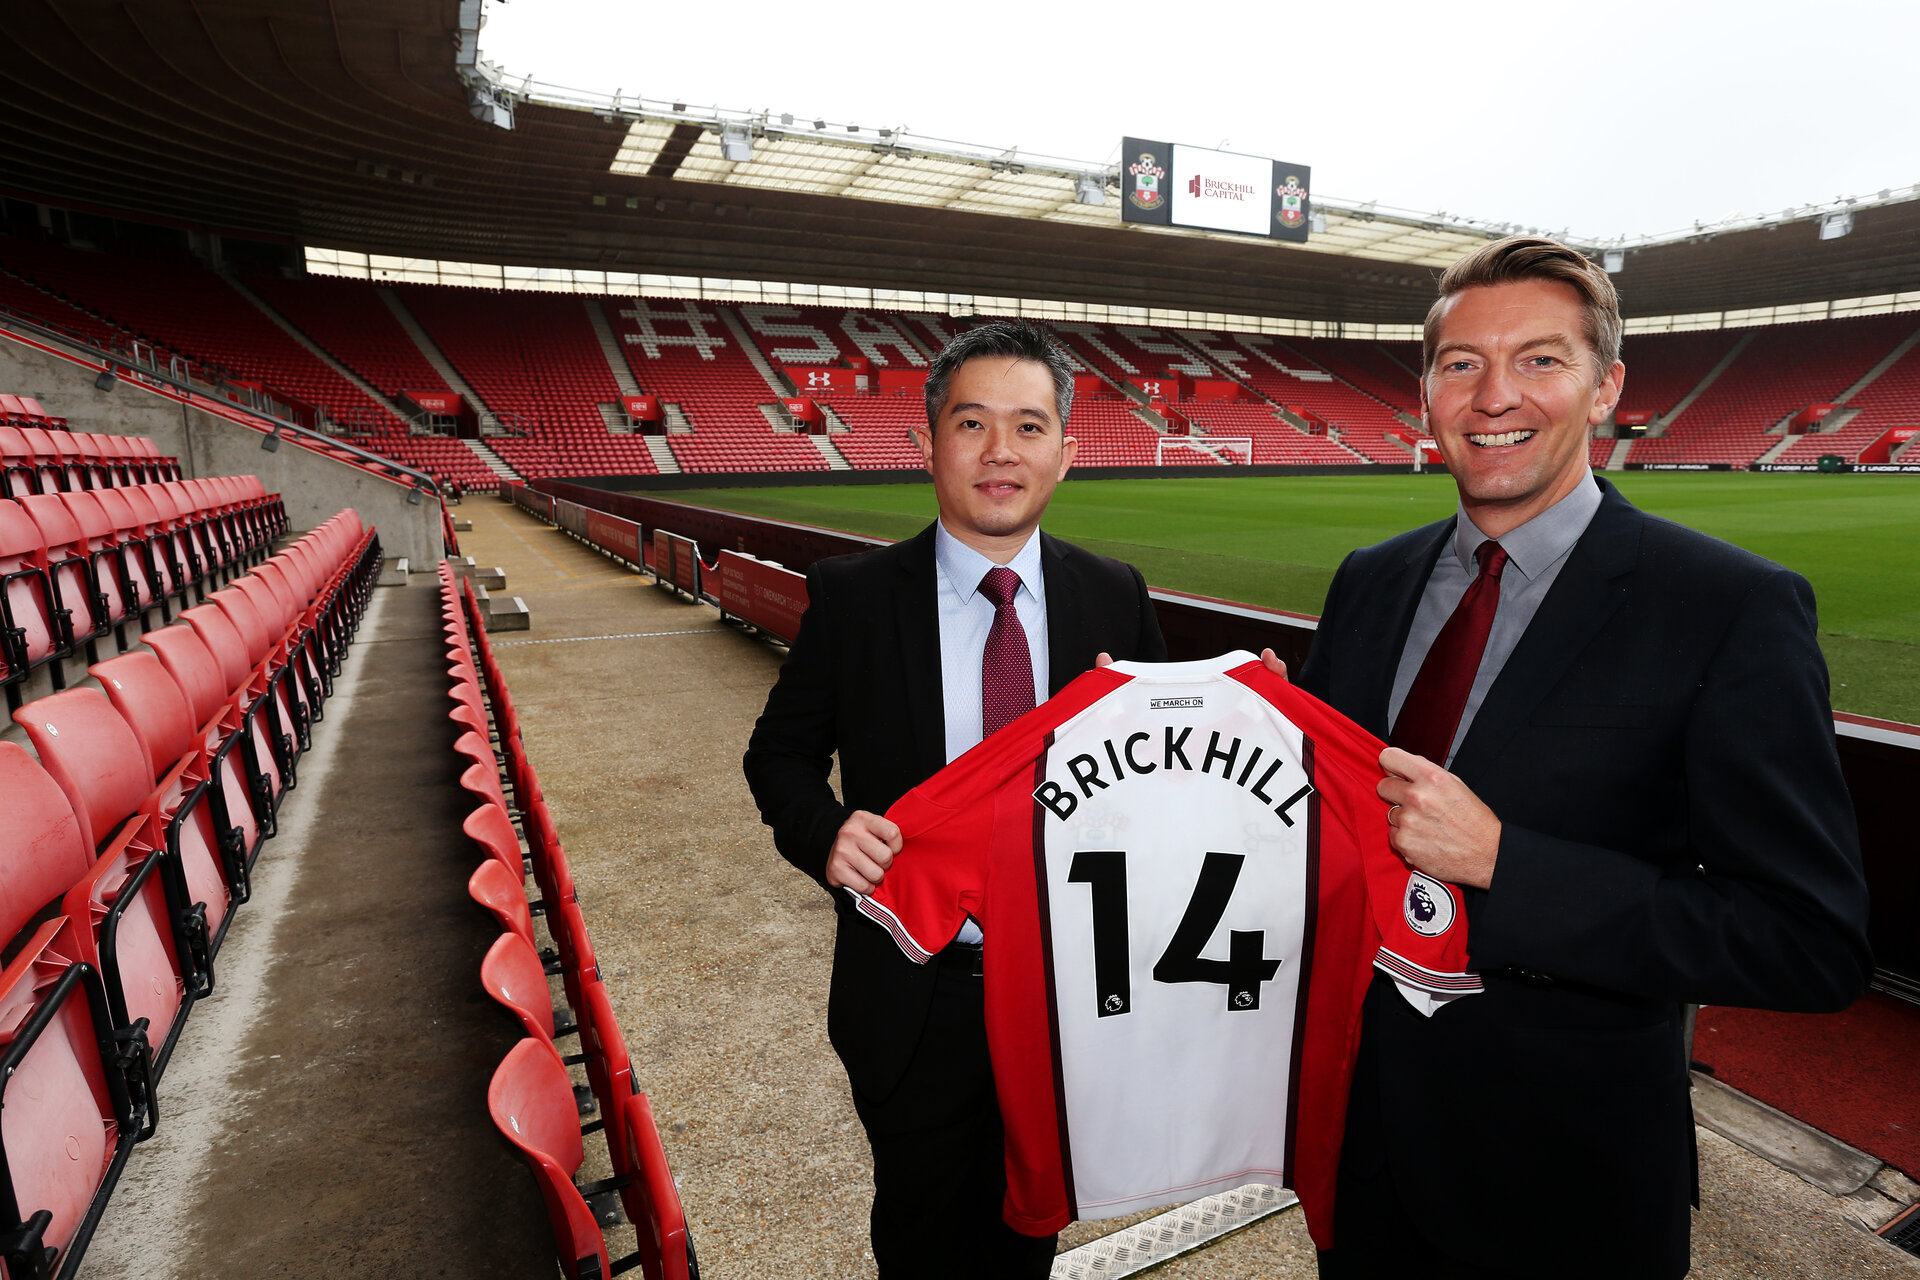 CEO of Brickhill Capital Guoxian Chen, left, and Southampton FC's commercial director David Thomas. Southampton FC announce a new partnership with Brickhill Capital. Pictured at St Mary's Stadium, Southampton.                Picture: Chris Moorhouse 07932 522561           Thursday 21st September 2017